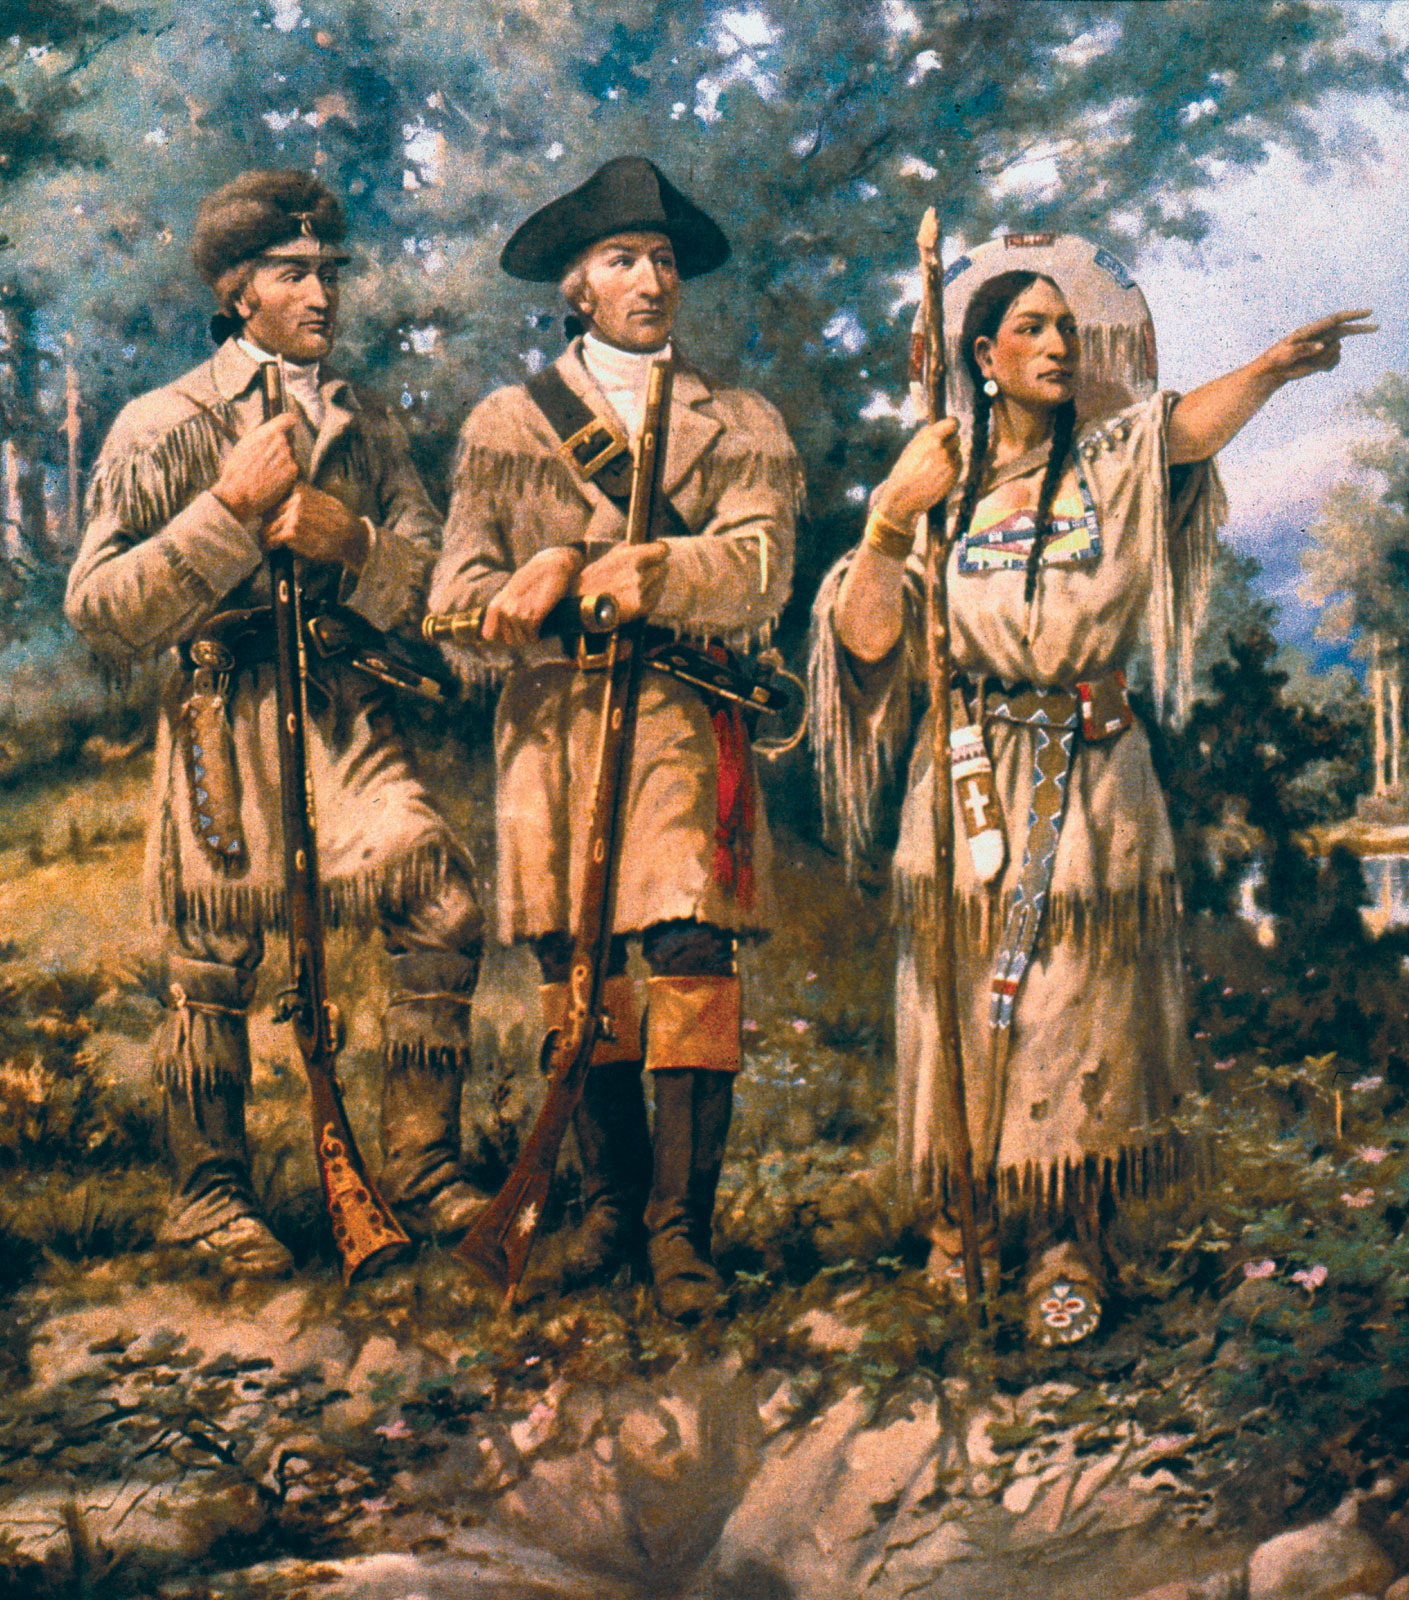 Lewis_&_Clark with an Indian native girandoni air rifle